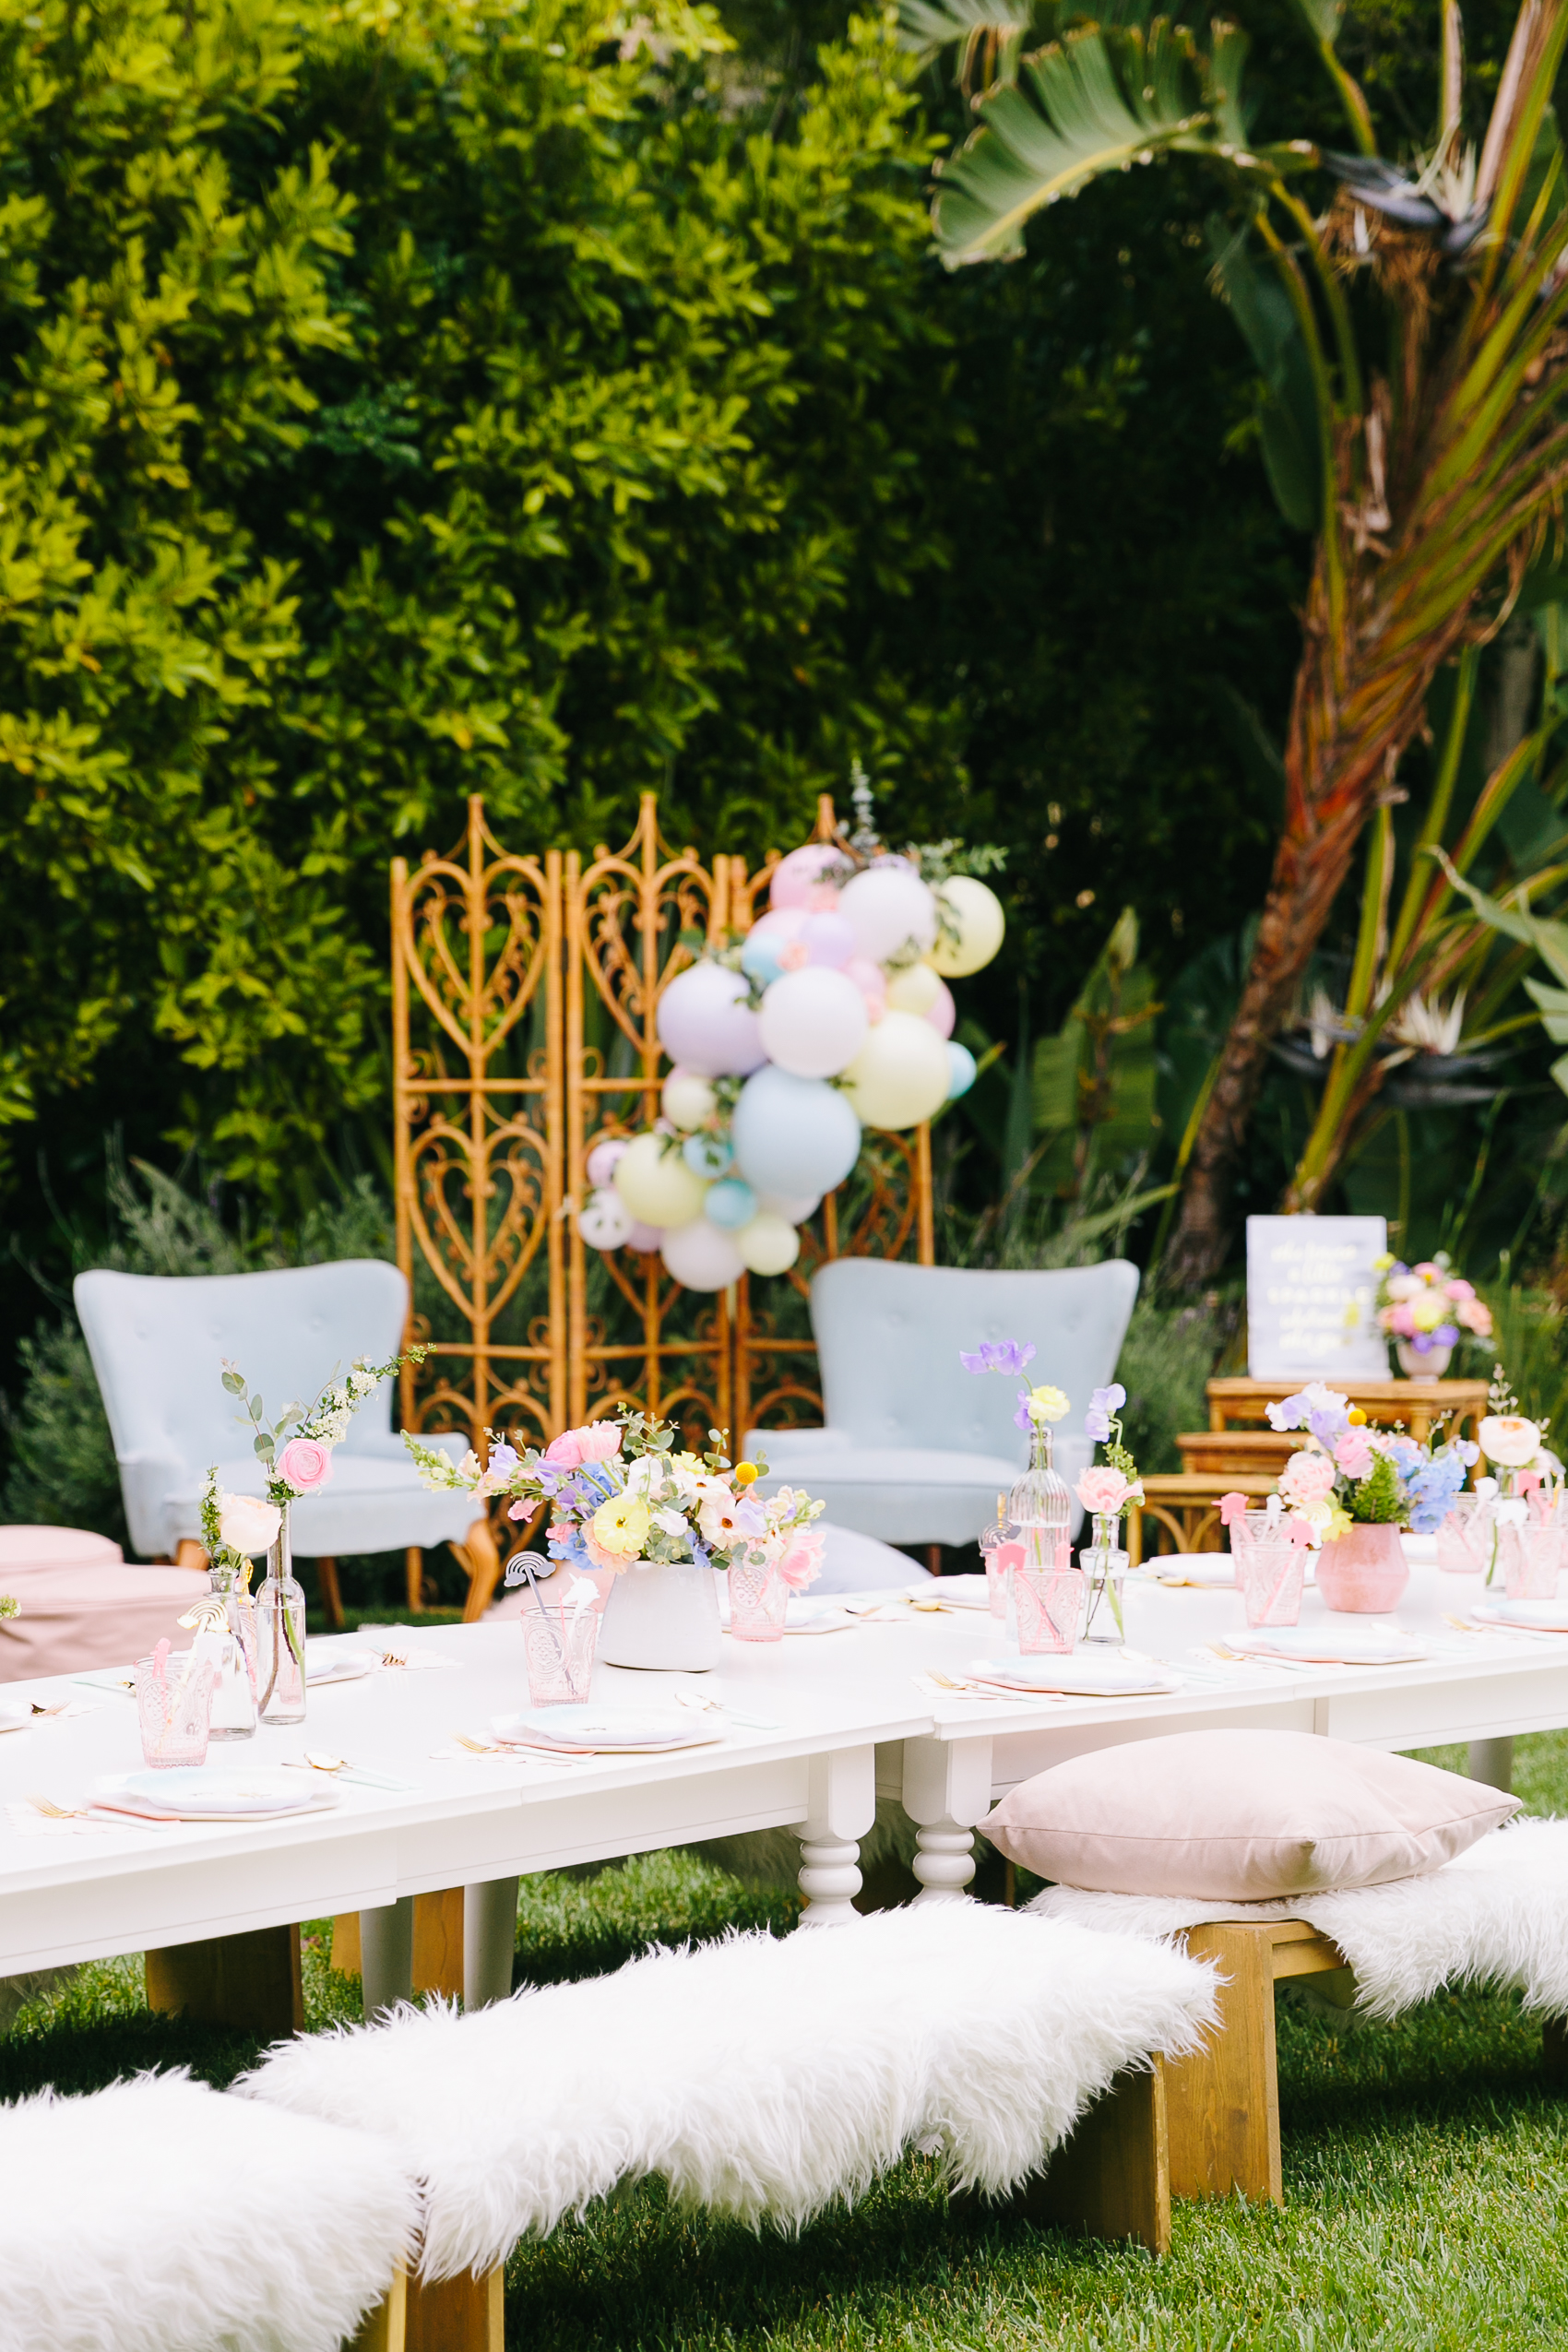 Los_Angeles_Family_Photographer_Luxury_Childrens_Party_Beverly_Hills_Unicorn_Birthday_Party-0054.jpg